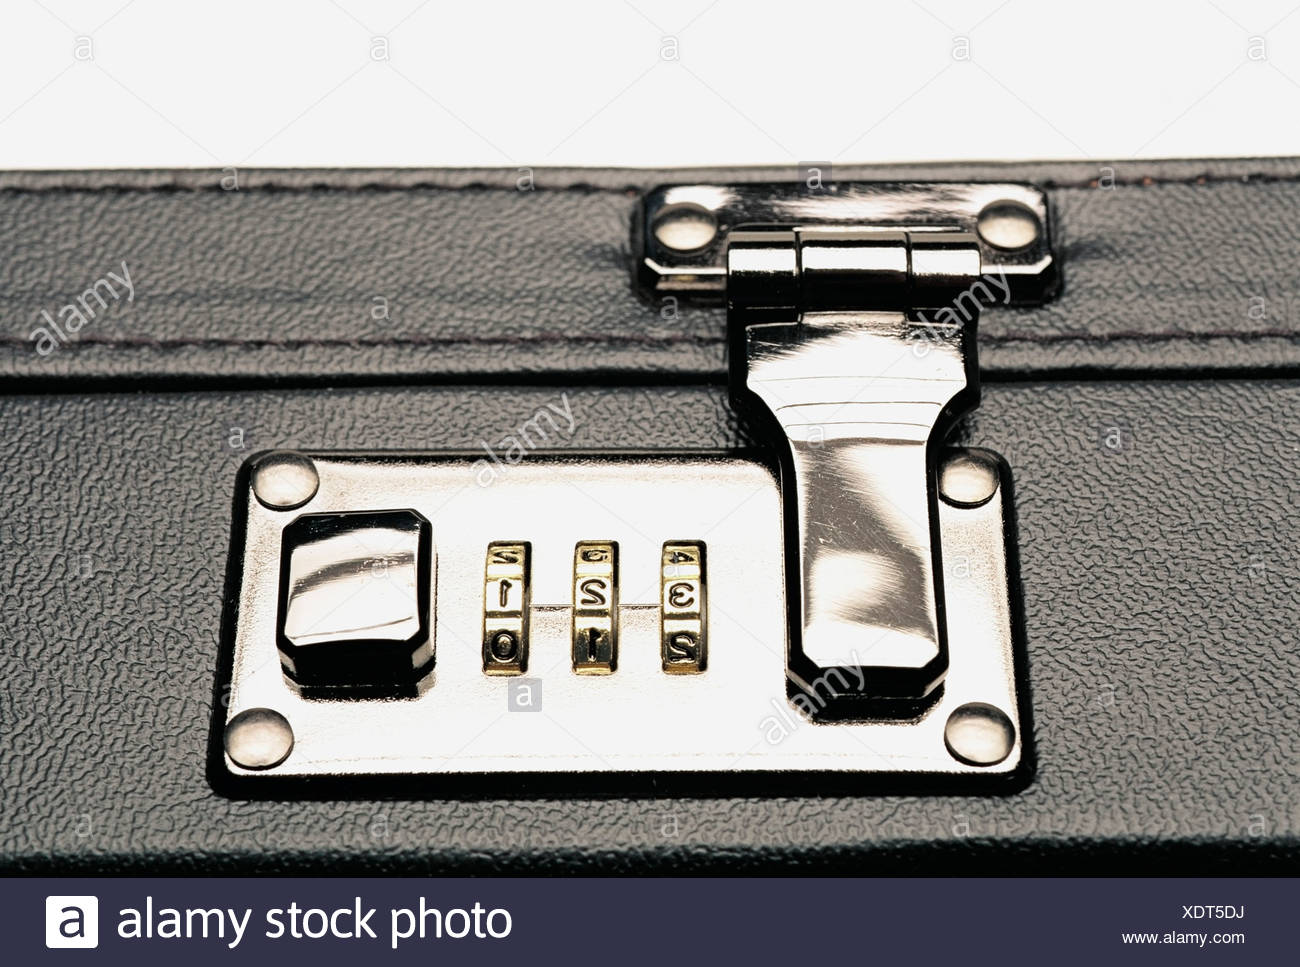 Combination lock on a briefcase Stock Photo